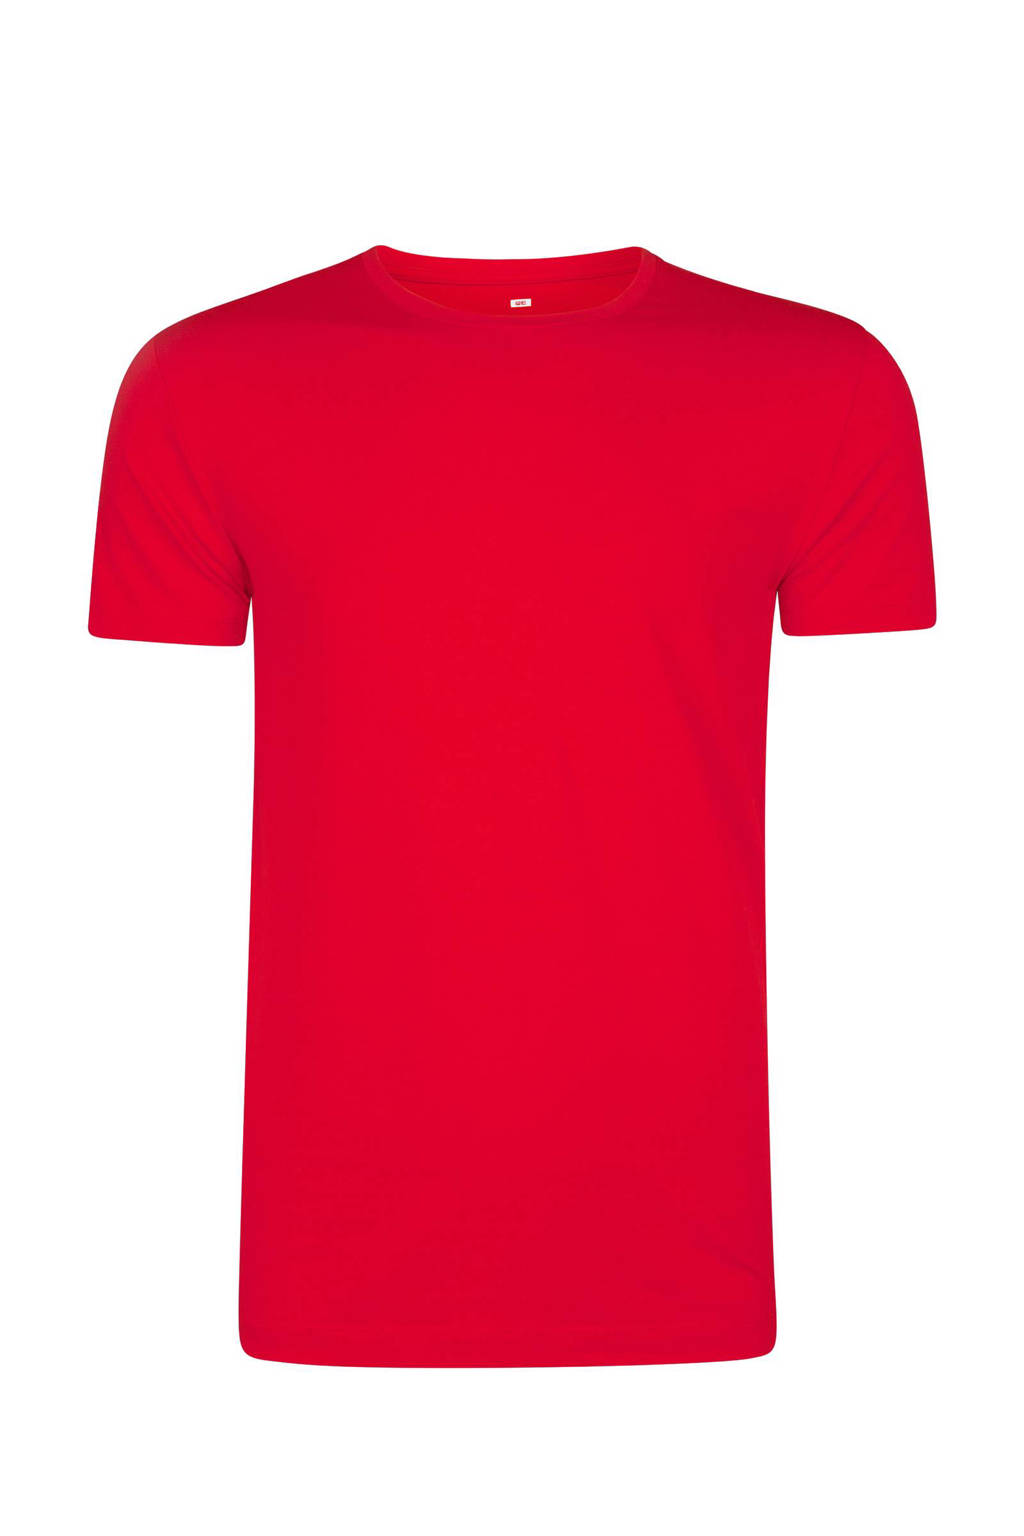 WE Fashion T-shirt rood, Rood